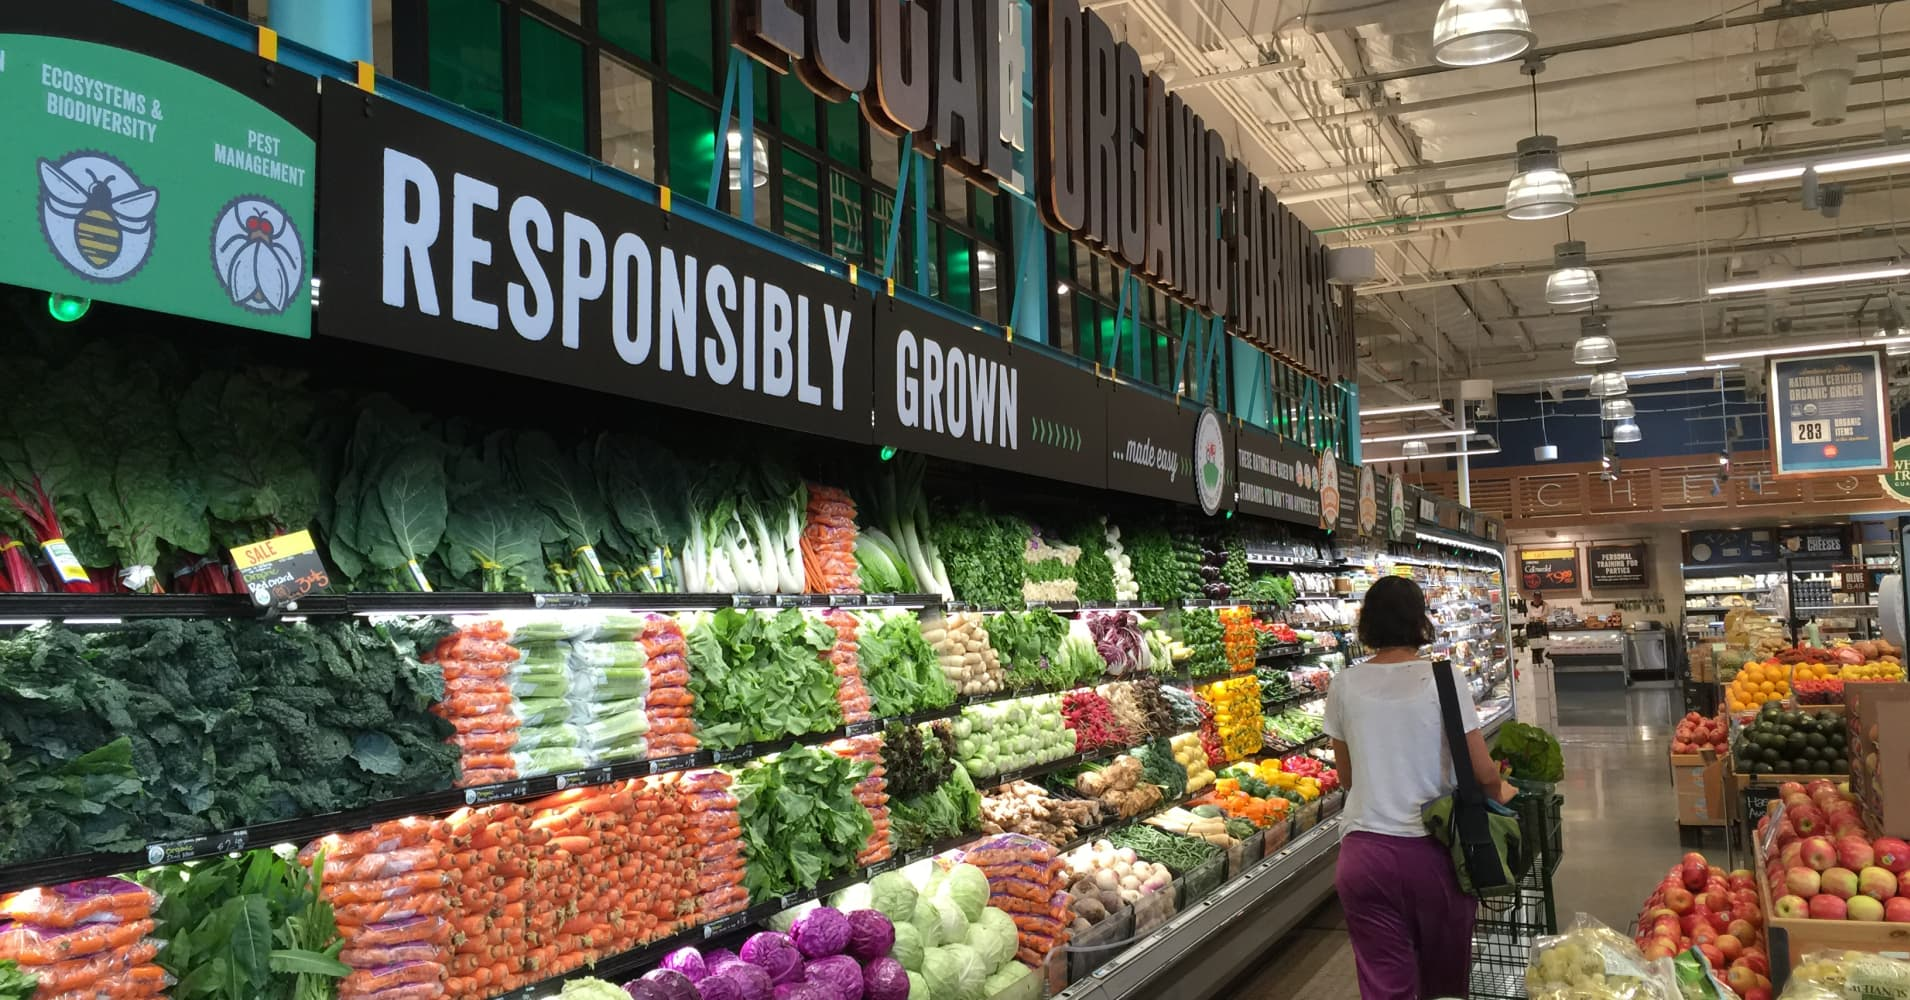 Where Is The New Whole Foods Going